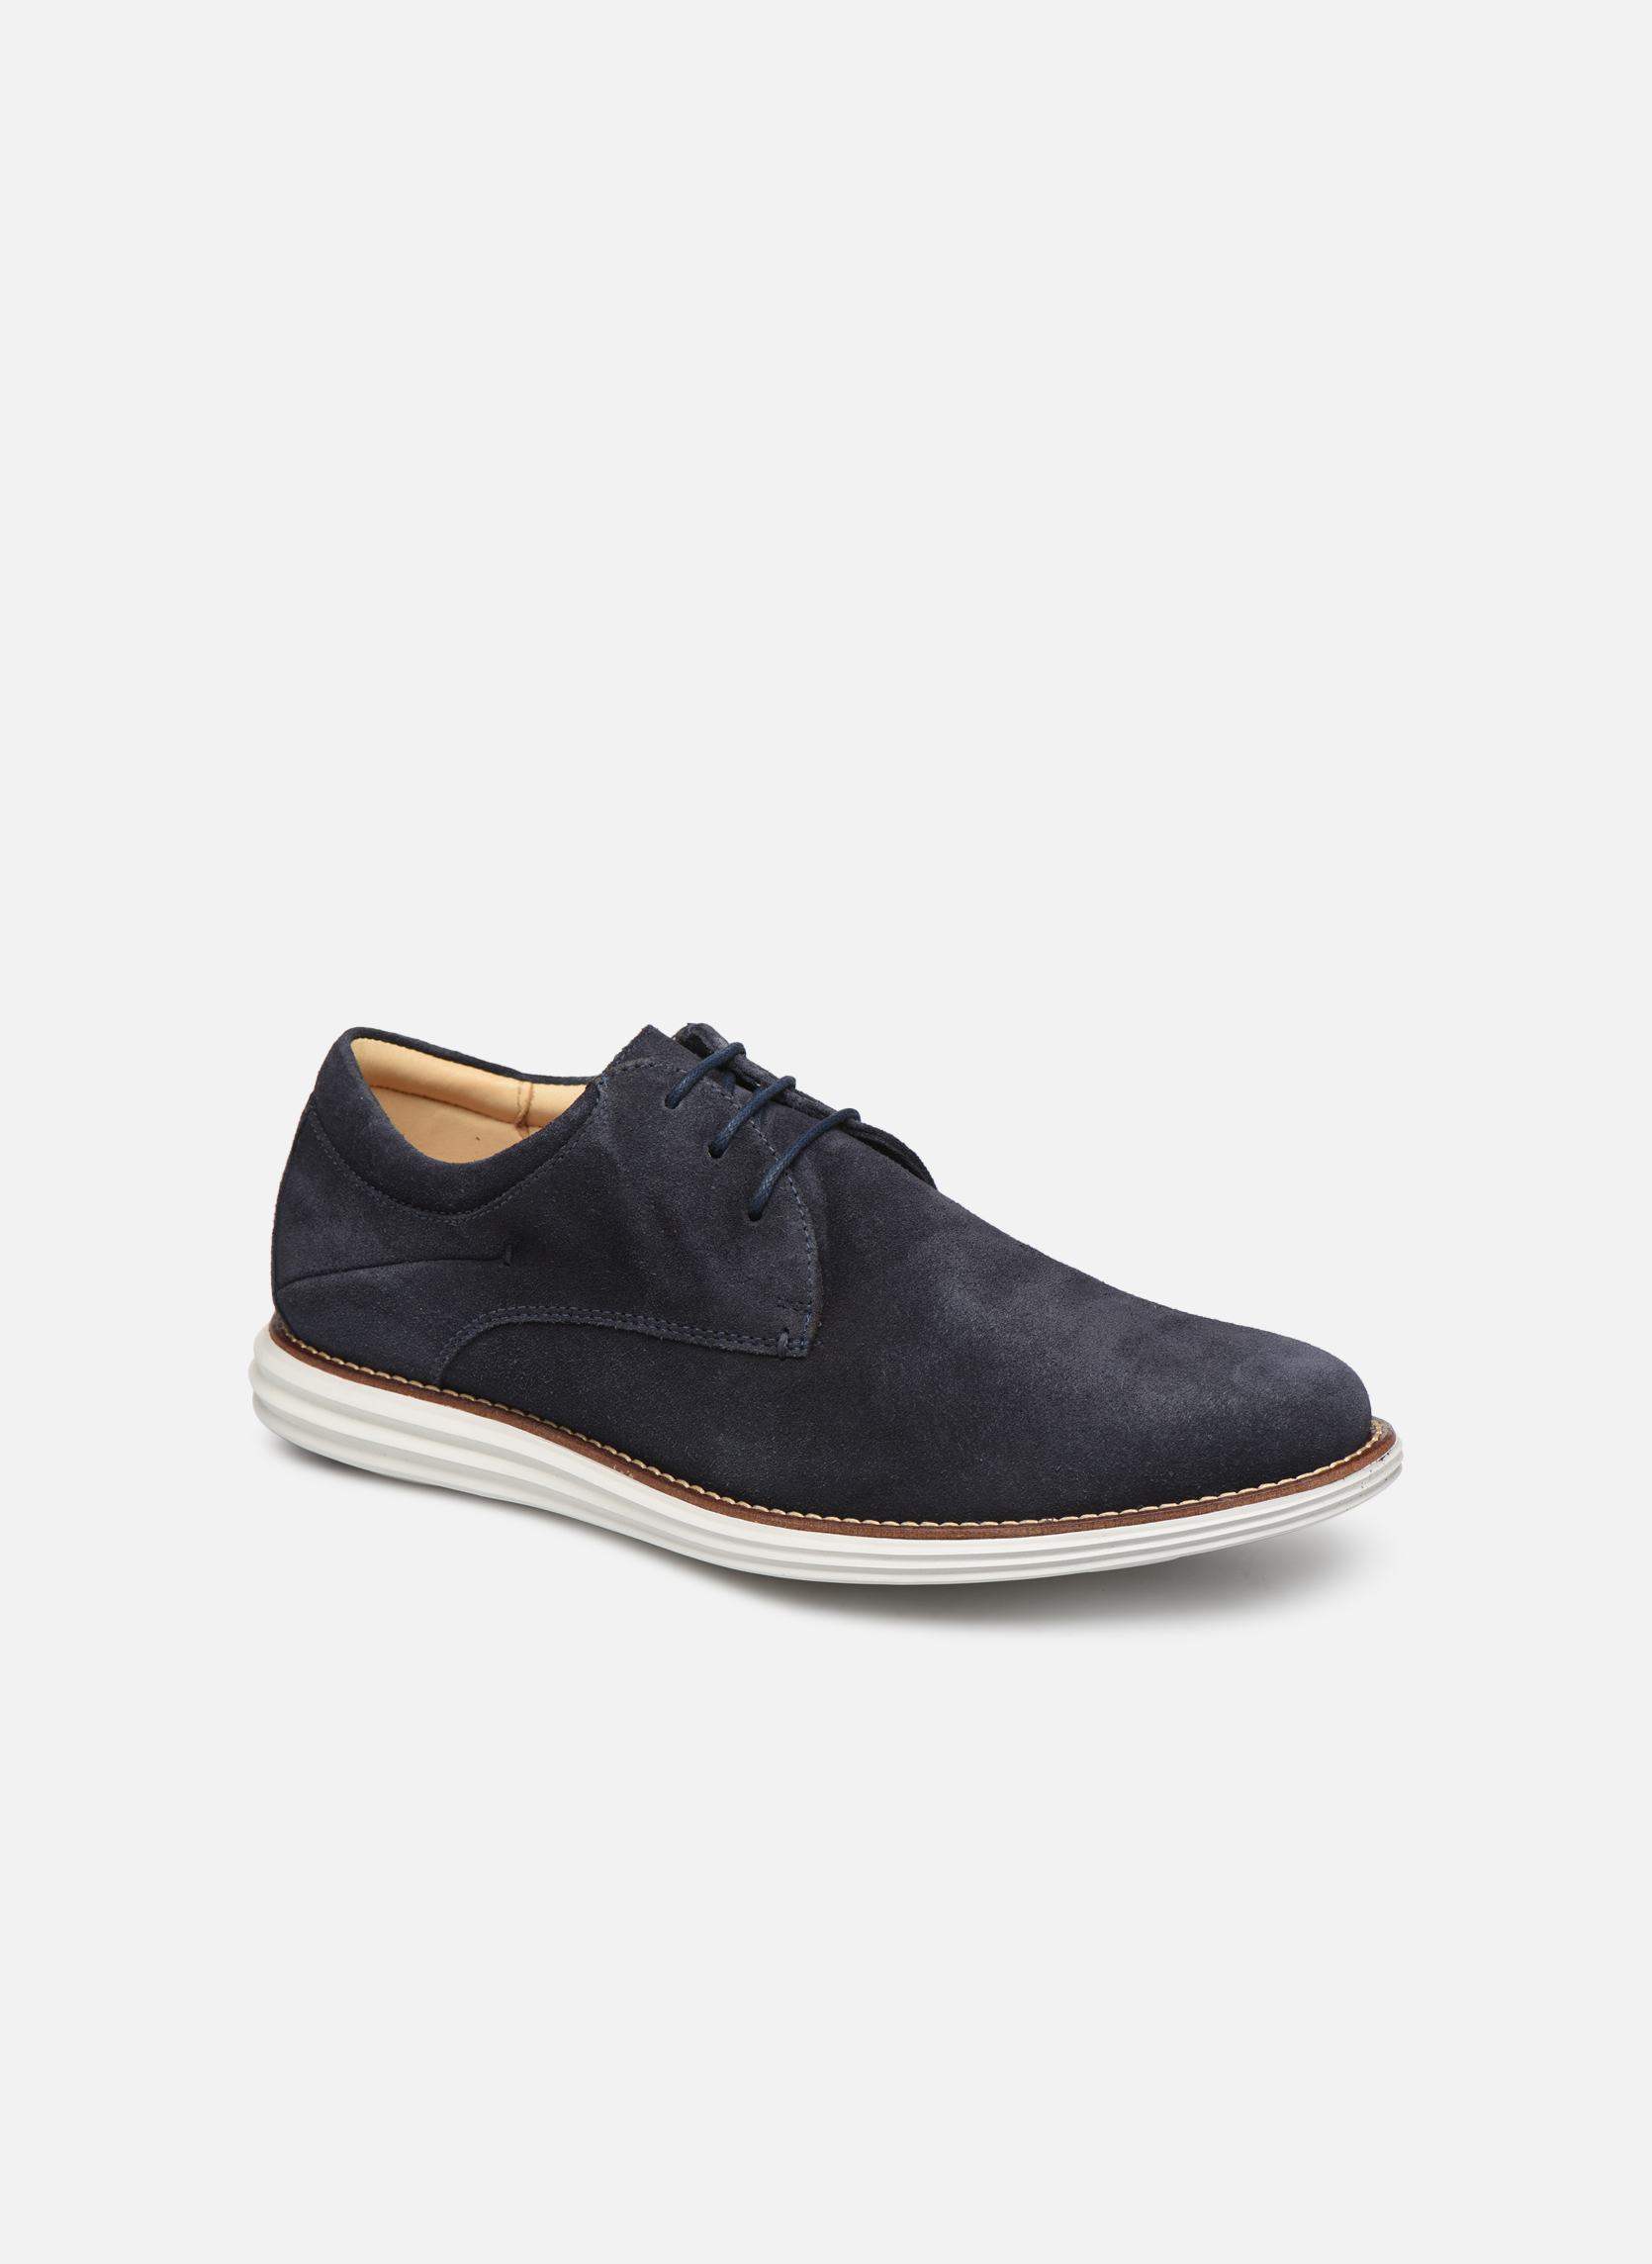 Veterschoenen Anatomic & Co Blauw